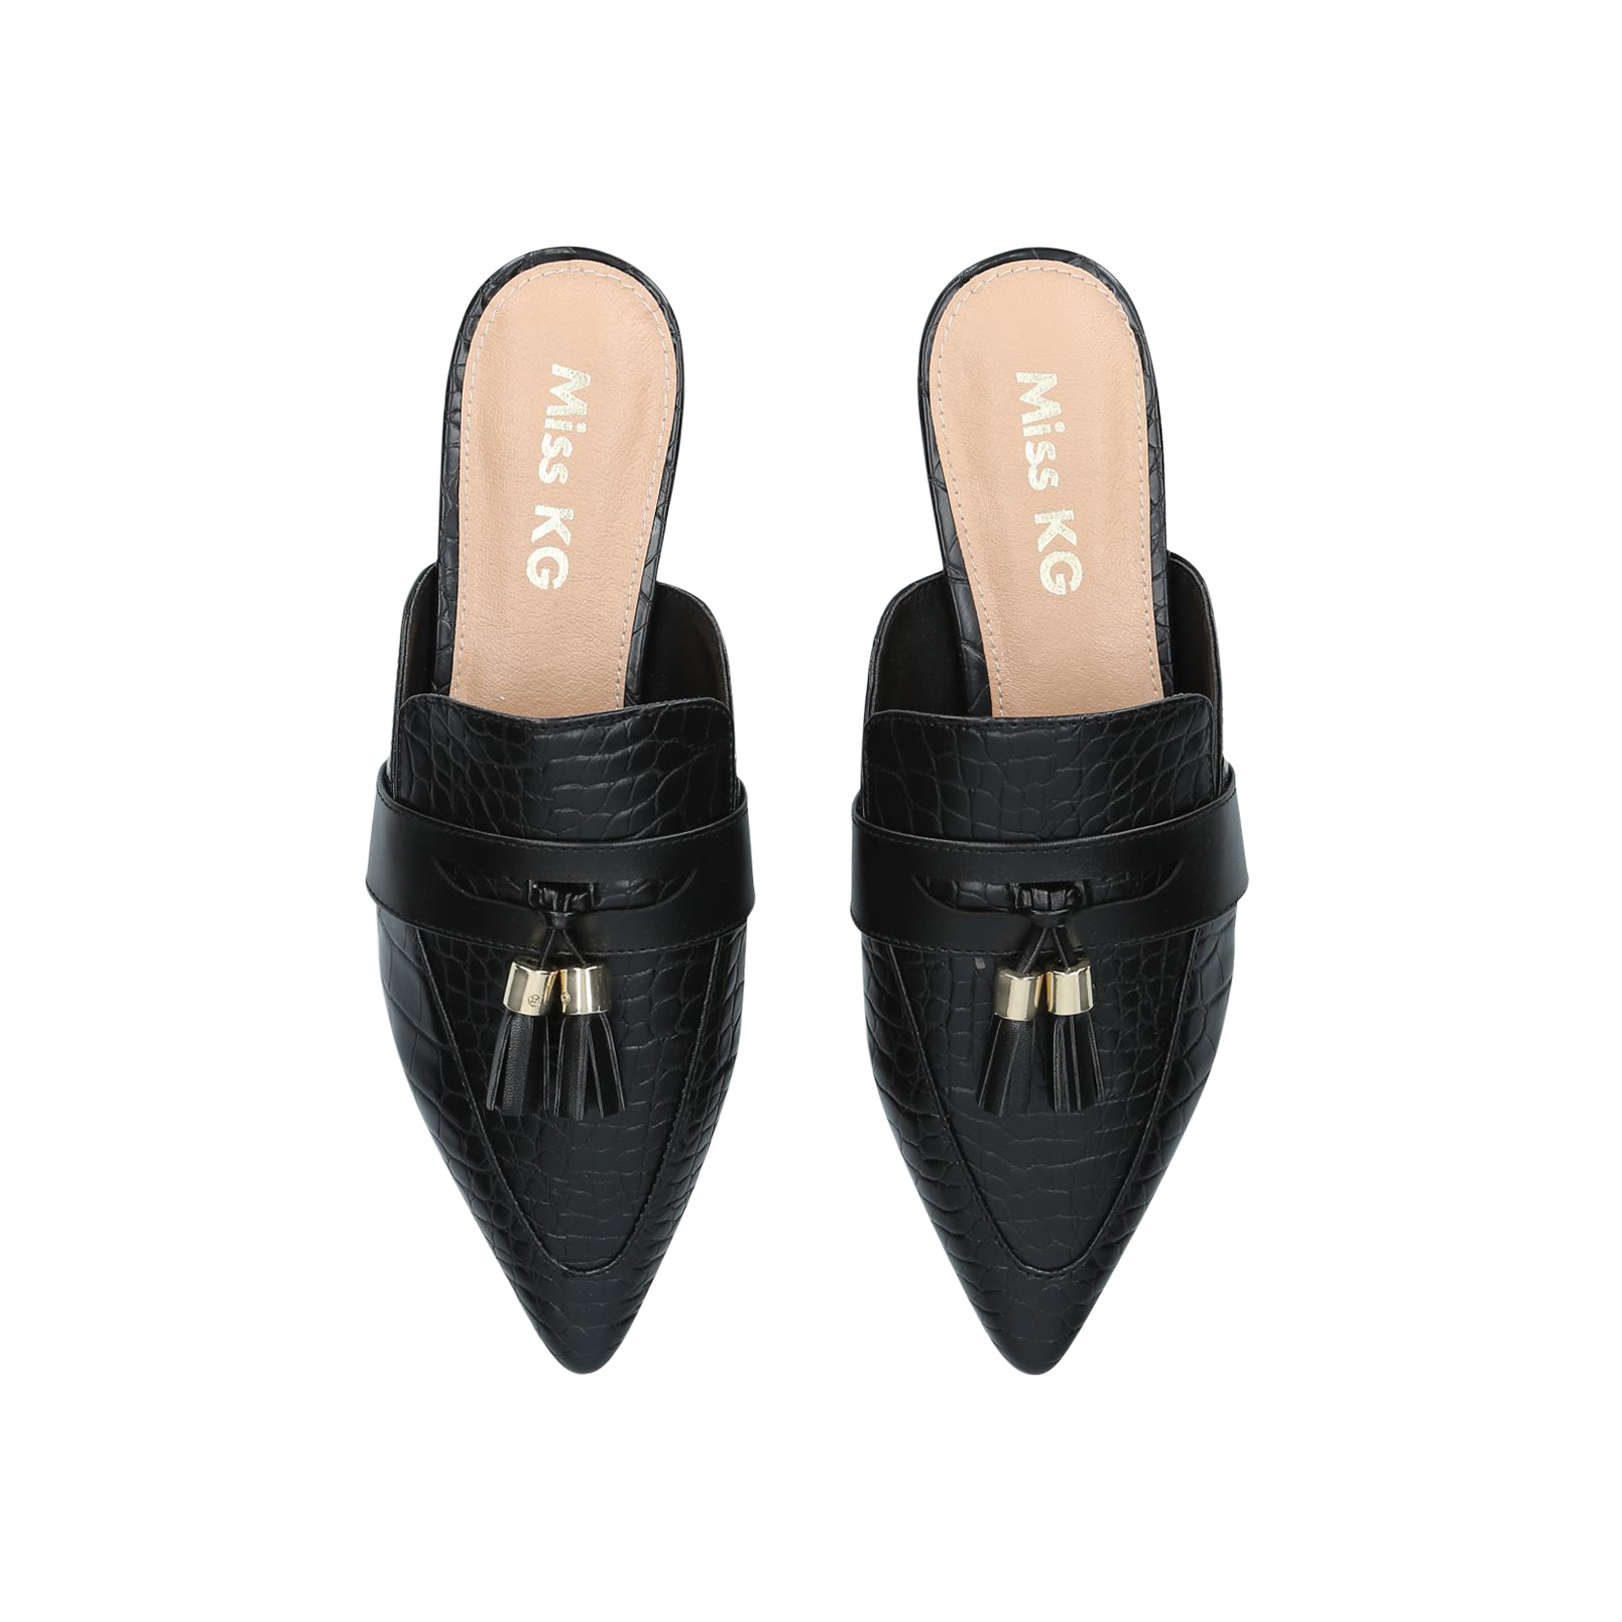 8be4dc9935d So that s the only subtle pair I m going to do I ve decided. These are  statement shoes. I will be back another day with ones that are more pared  back but ...